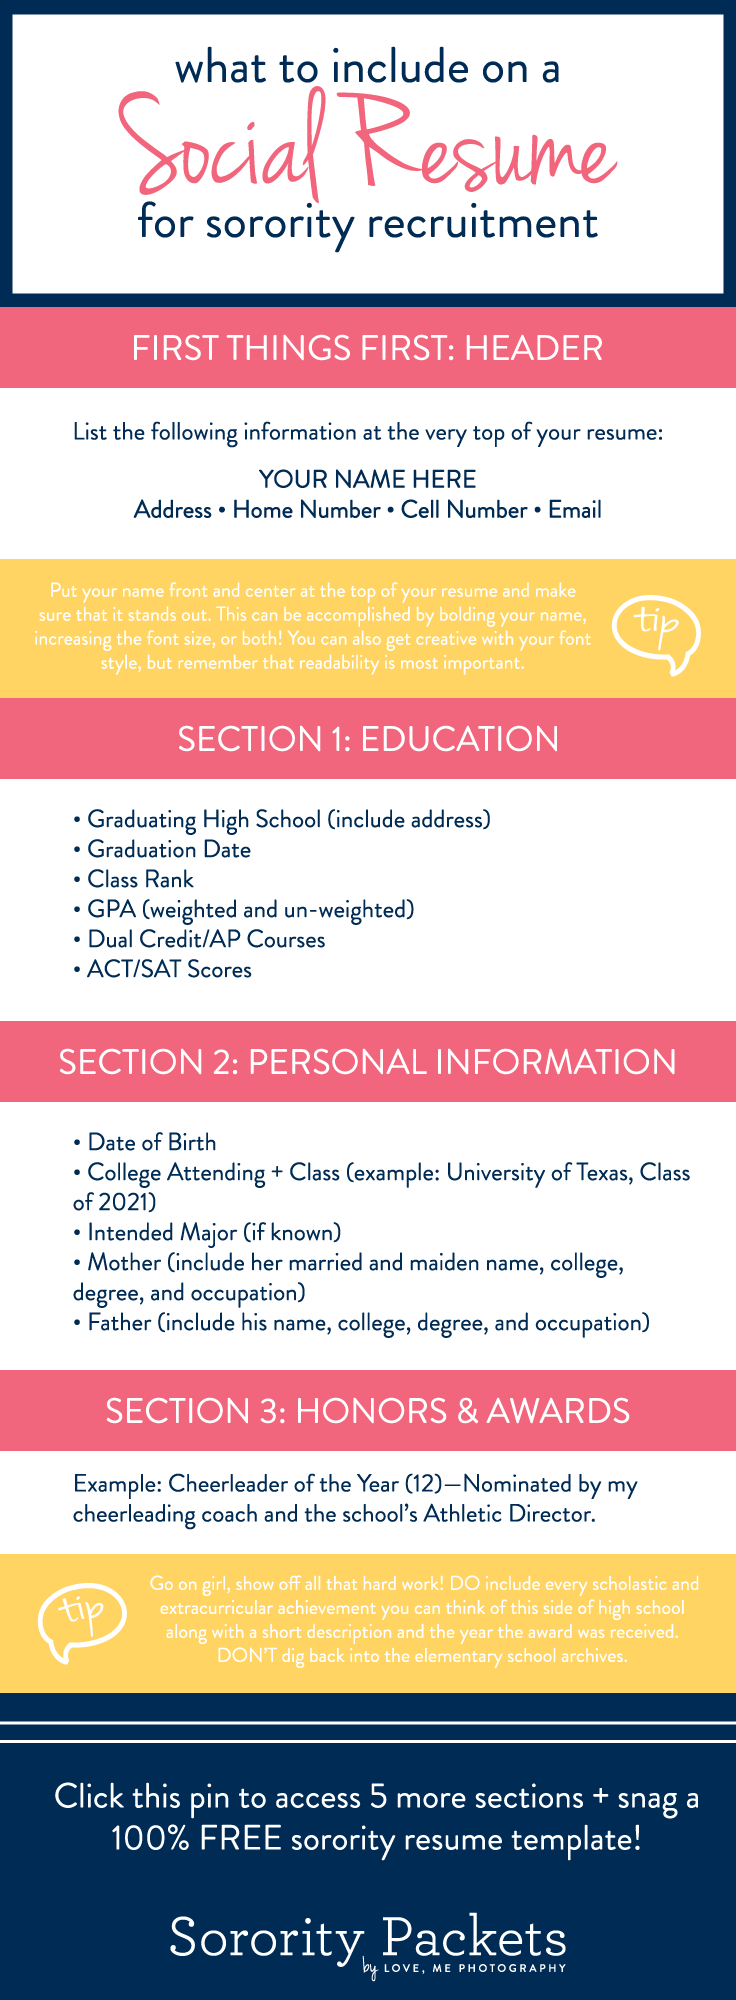 what to include on a sorority resume